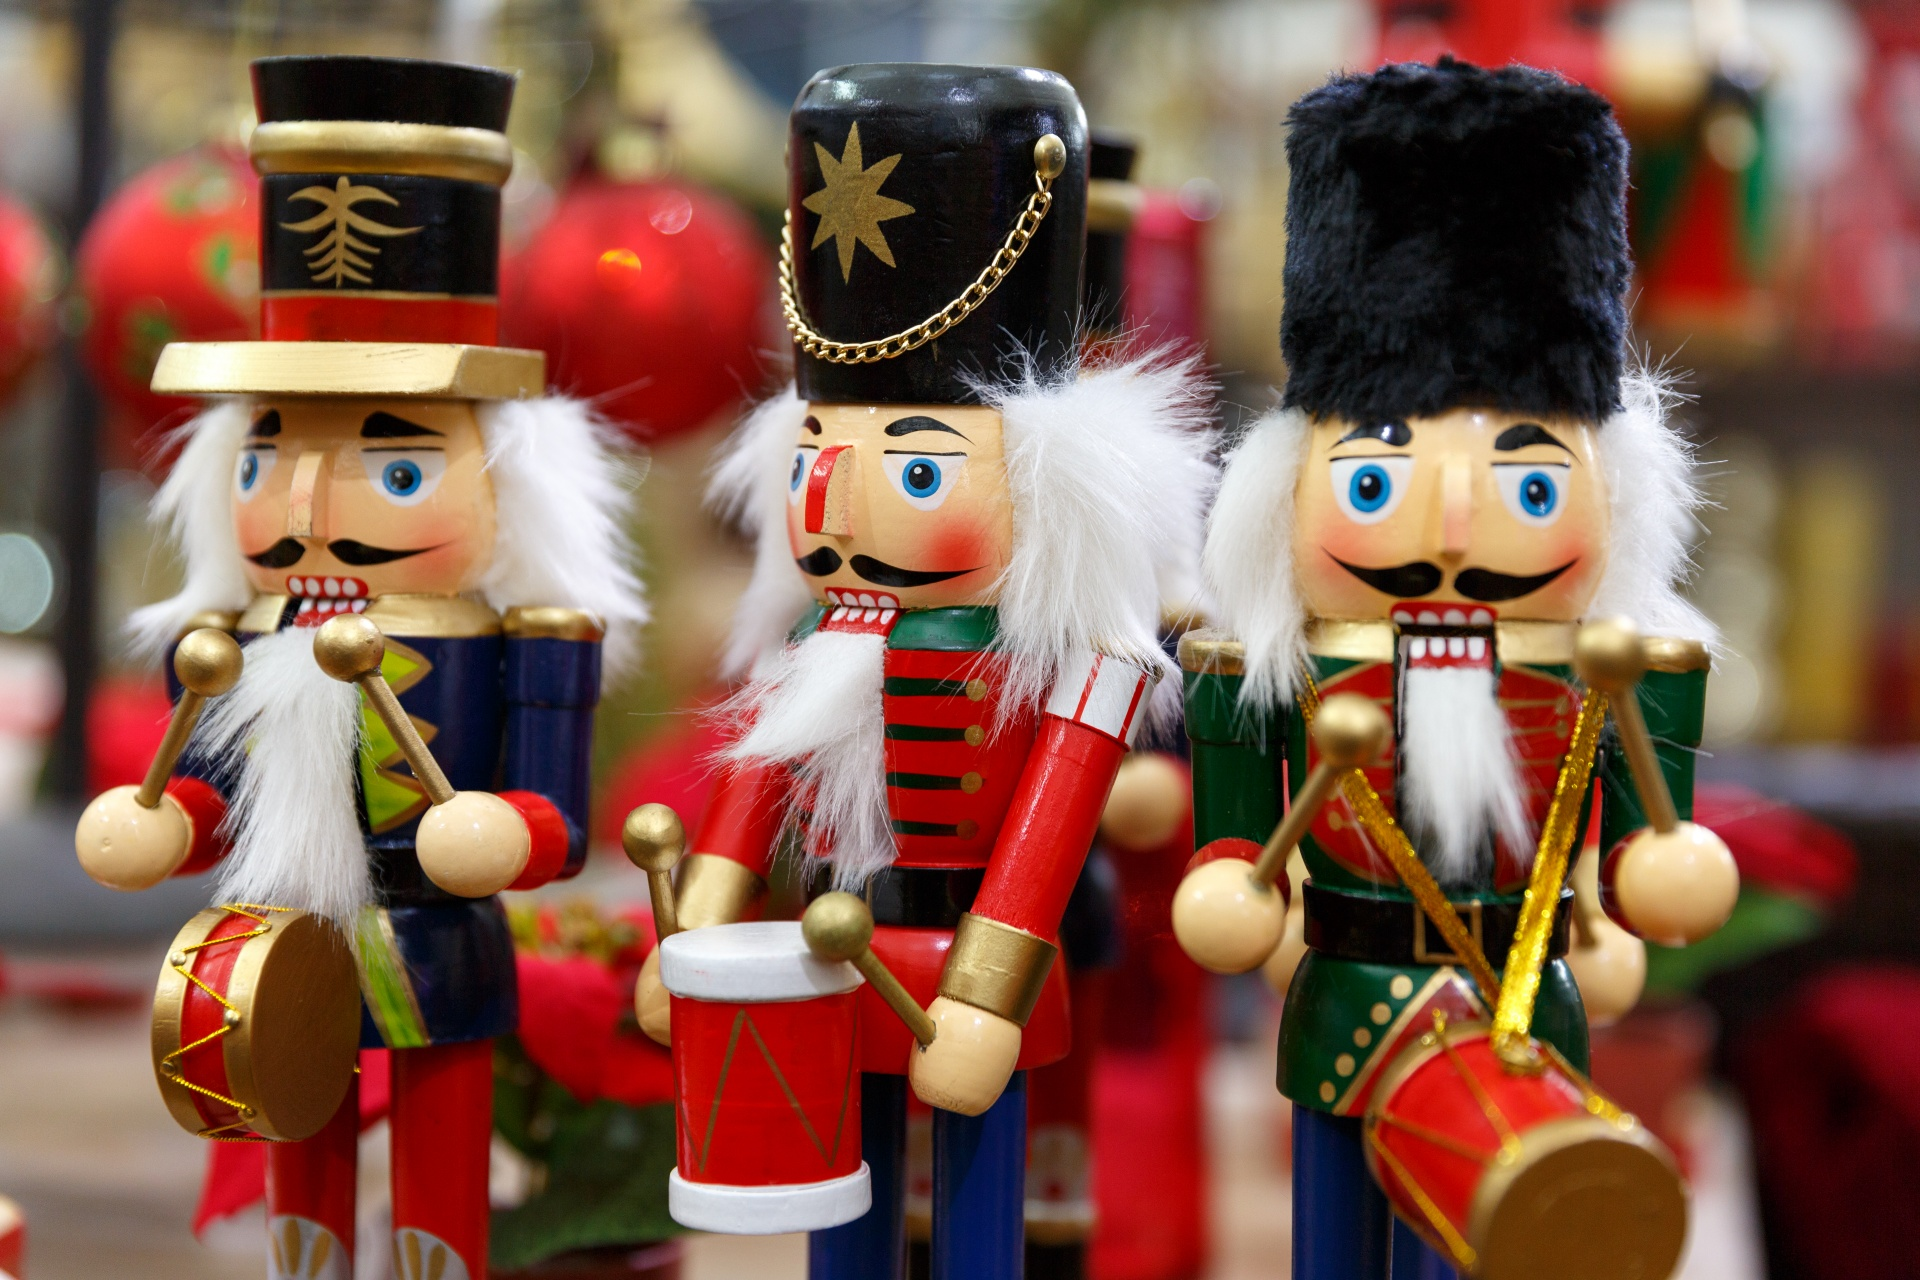 Toy Soldier Nutcracker From Behind The Pen